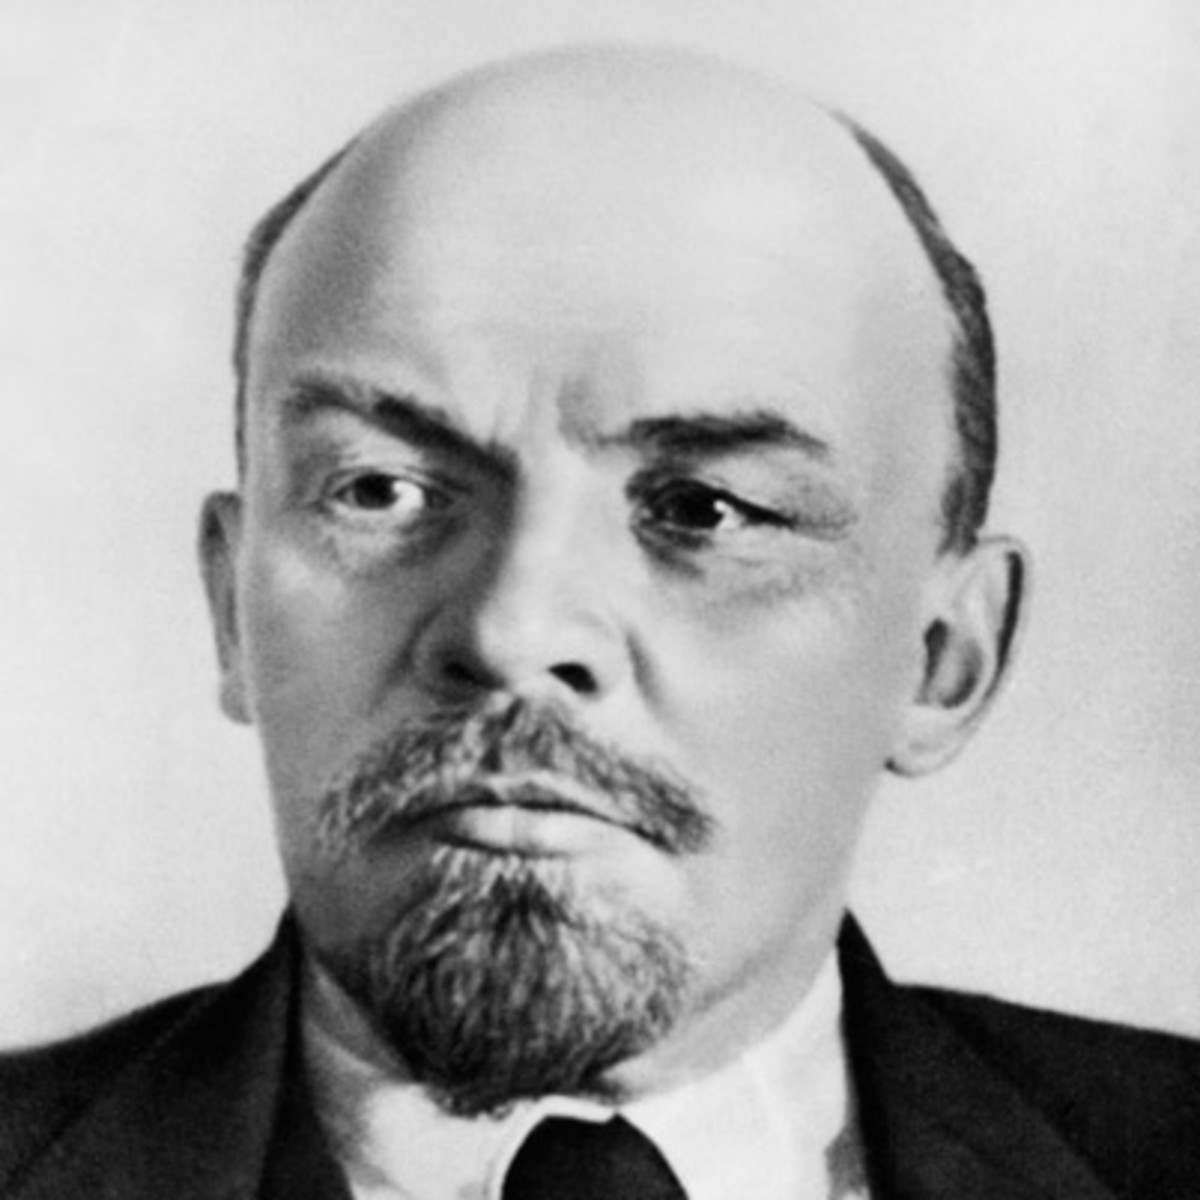 Official Soviet photo of Vladimir Lenin; first leader of the Soviet Union.